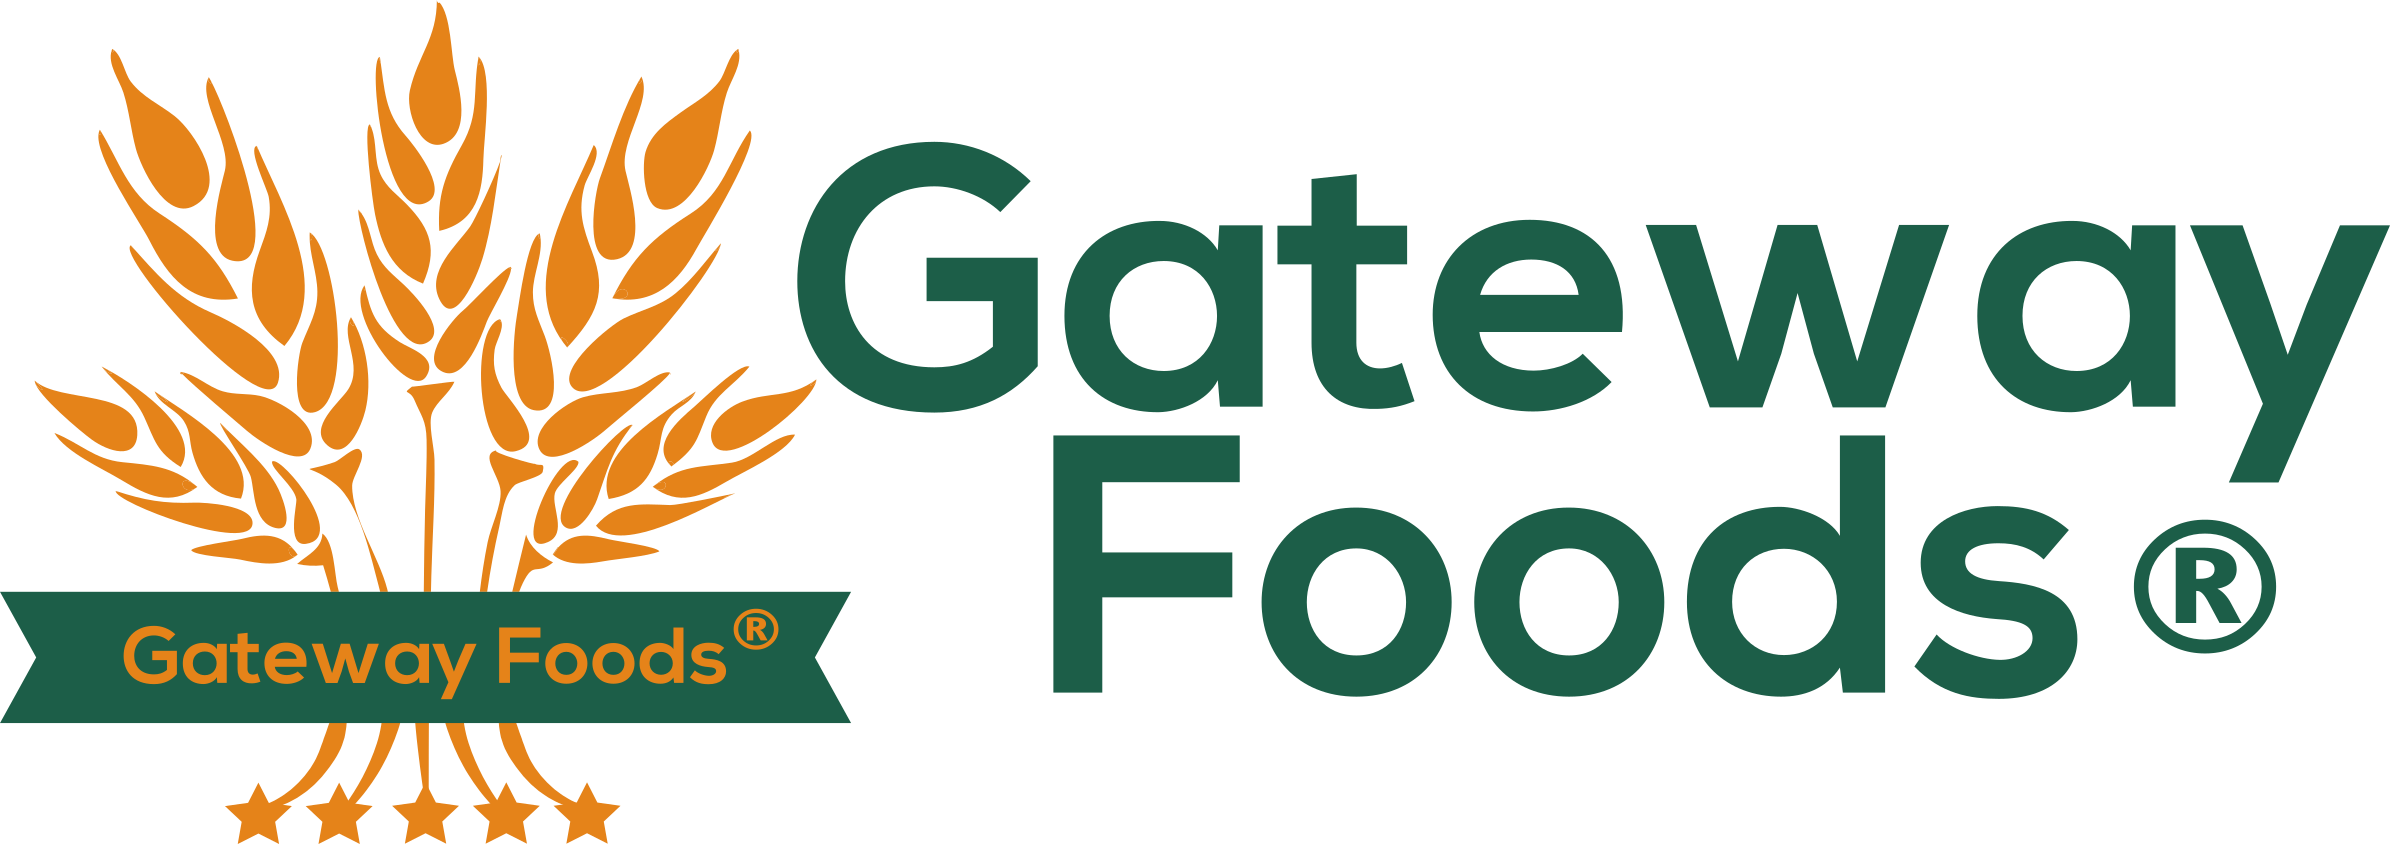 Gateway Foods LTD